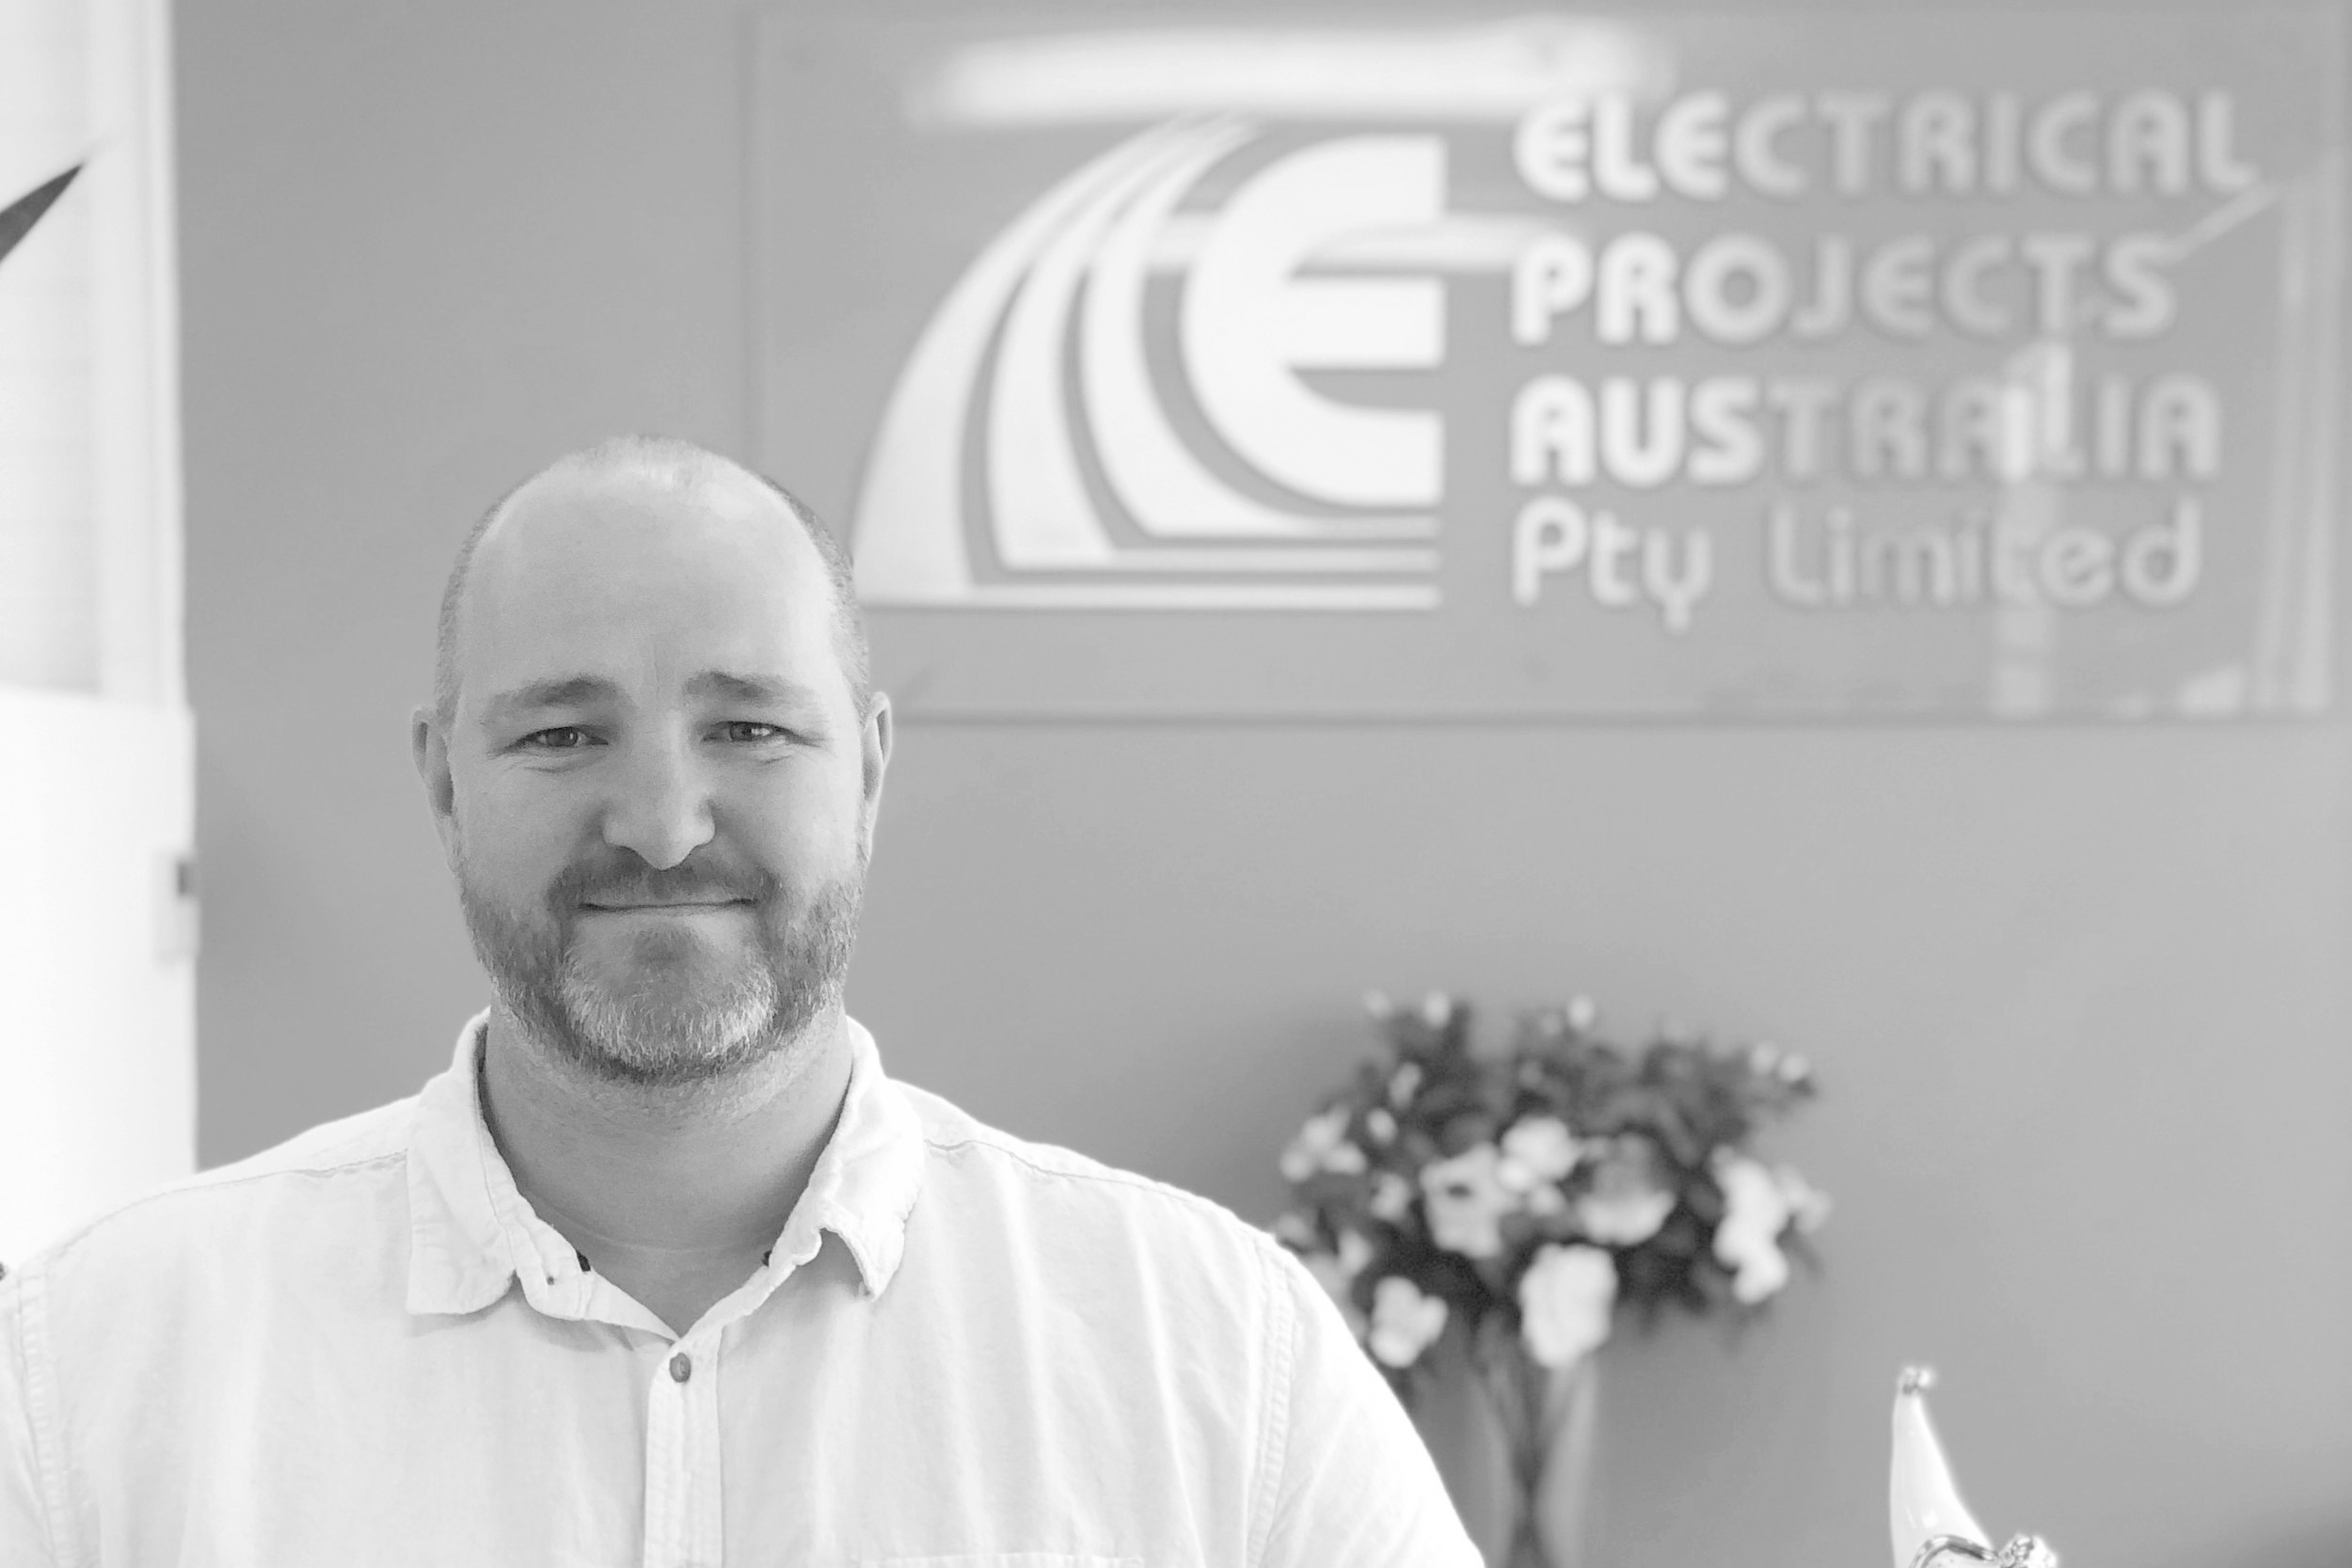 MATHEW CAMPBELL - ELECTRICAL ENGINEERMathew joined our team in 2018 as an Electrical Undergraduate Engineer.Mathew has a background in ICT and network administration, Mathew is currently completing his University Degree in Electrical Engineering at the University of Newcastle.Mathew is involved with Industrial Design and Building Services Design.